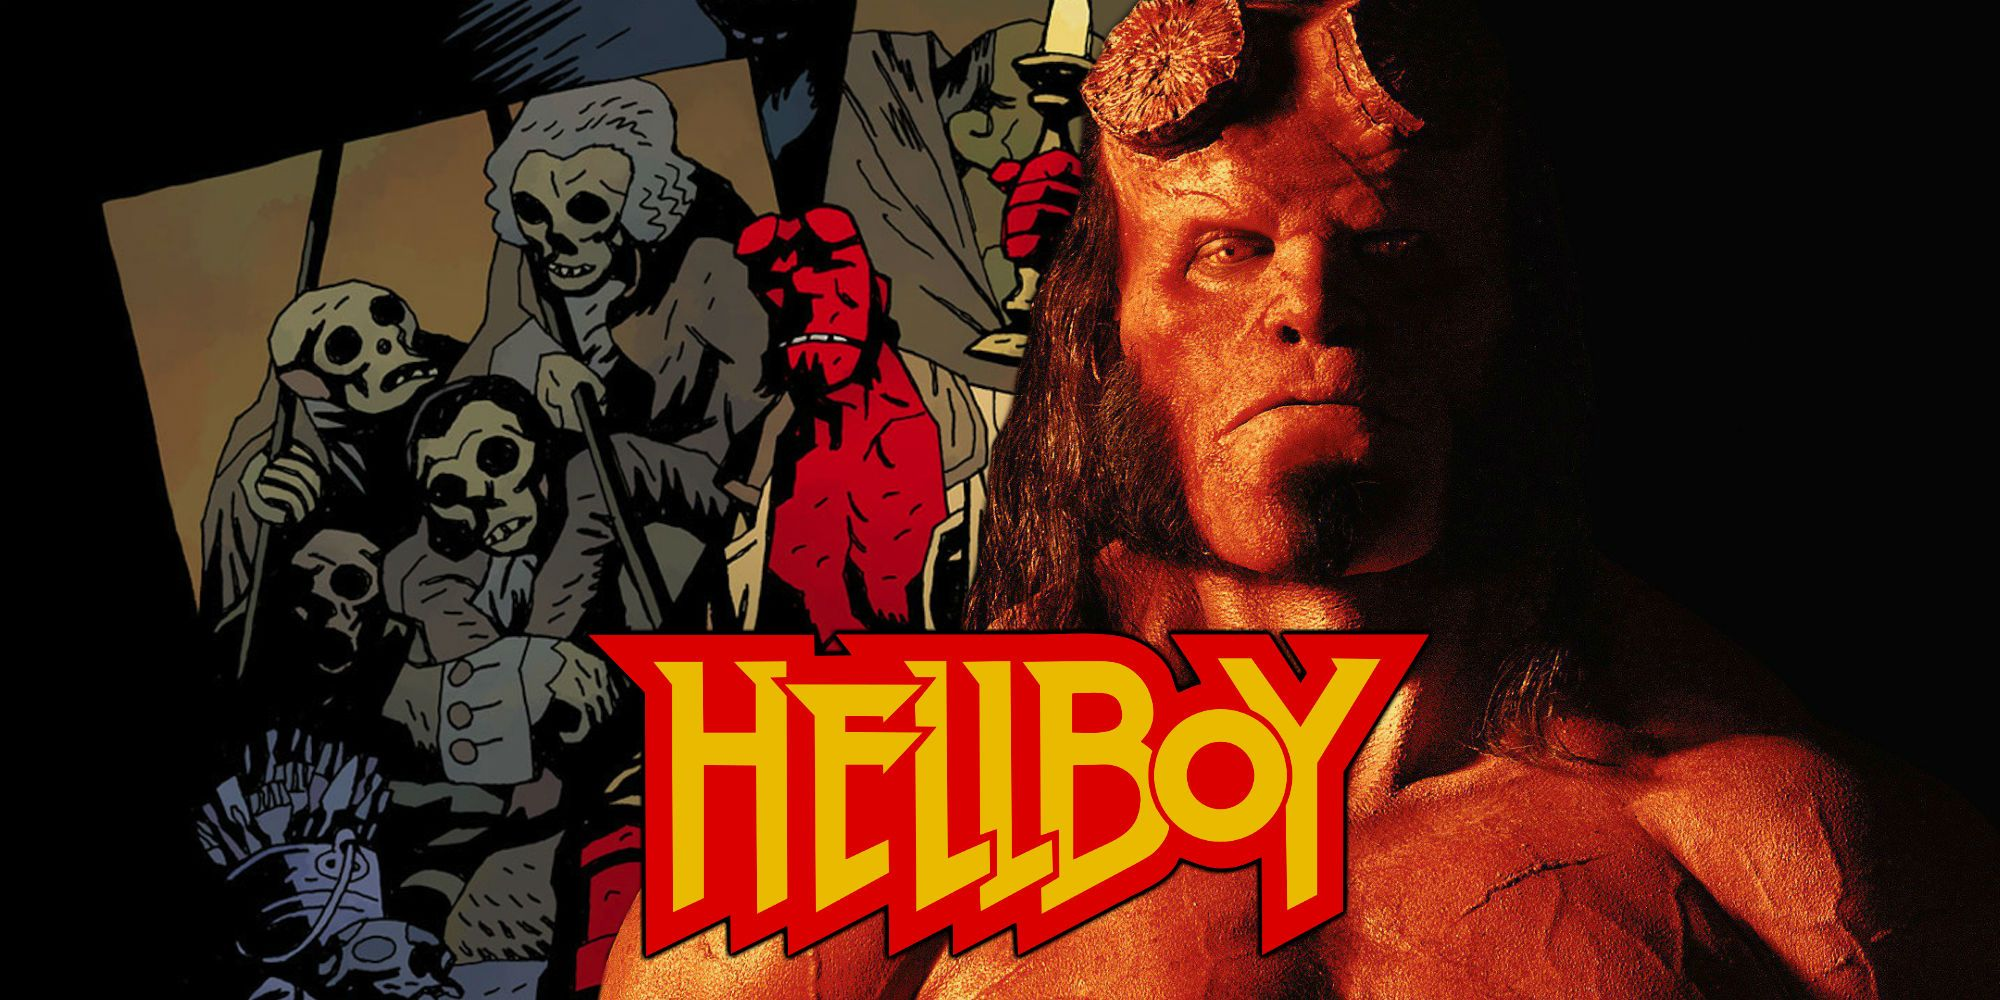 hellboy movie trailer  cast  every update you need to know